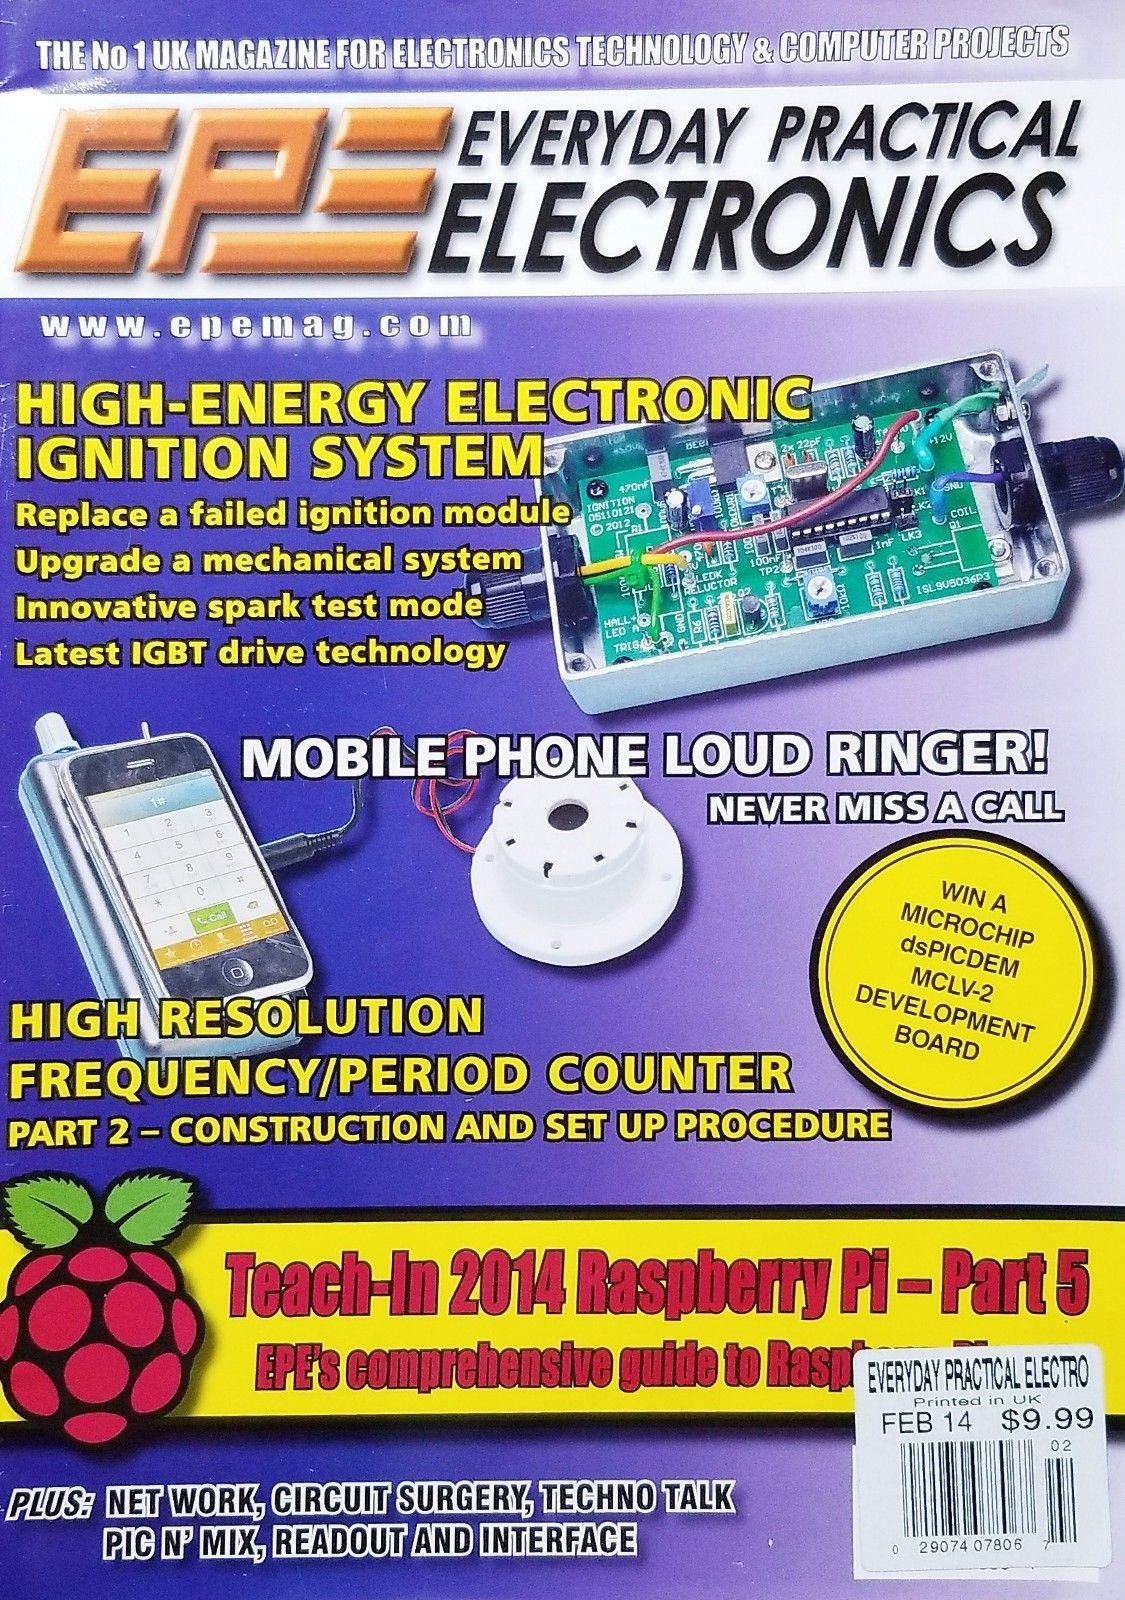 EPE EVERYDAY PRACTICAL ELECTRONICS, FEBRUARY 2014 PRINTED IN UK^